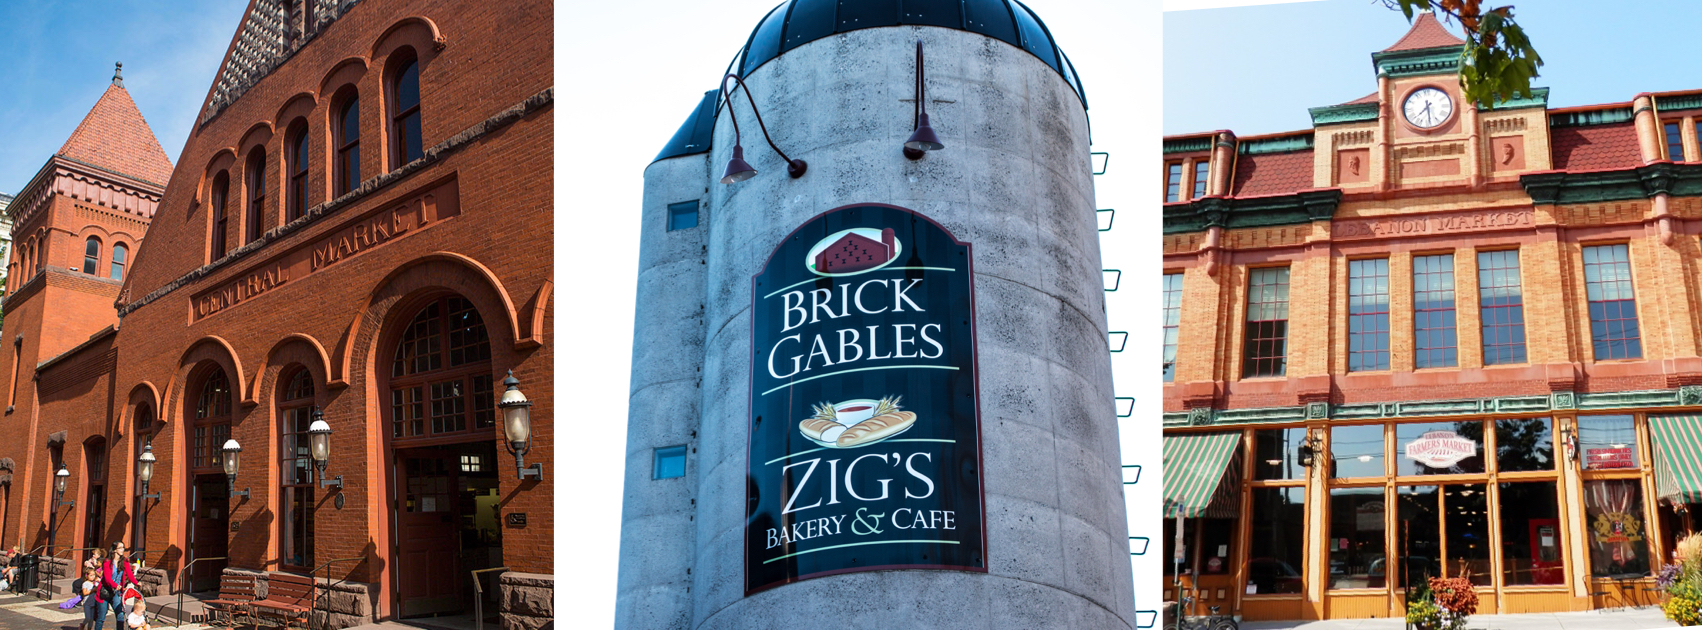 Zig's has locations at Lancaster, PA's Central Market, Brick Gables in Lititz, PA and the Lebanon Farmer's Market in Lebanon, PA.